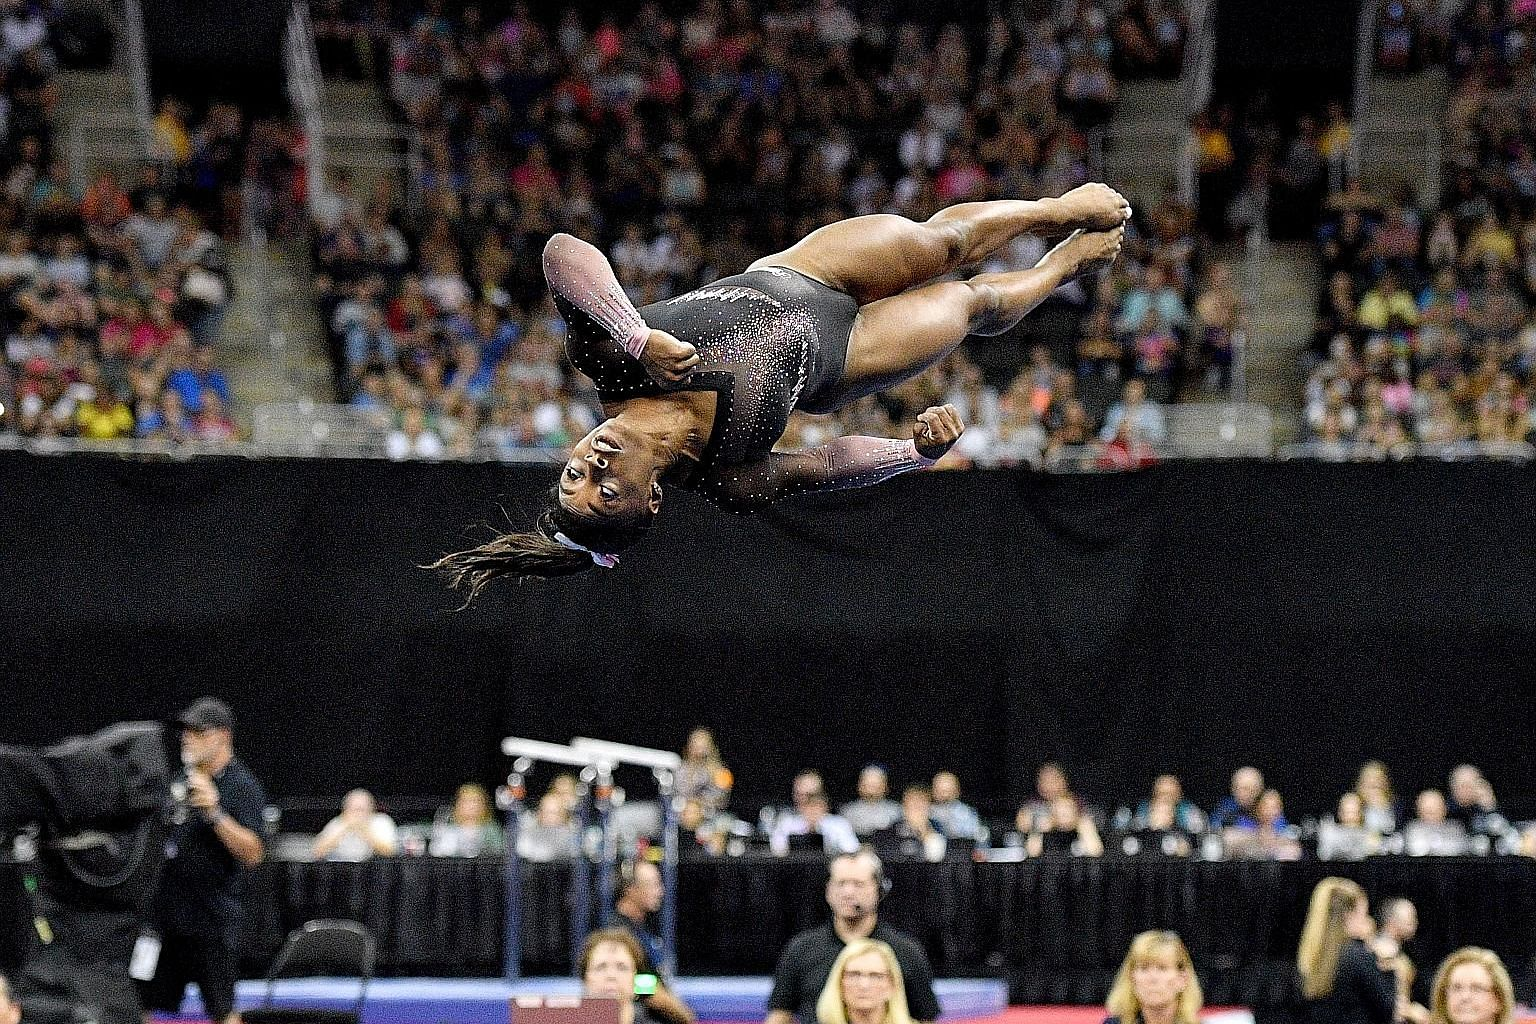 Simone Biles performing her floor routine at the US Gymnastics Championships in Missouri.